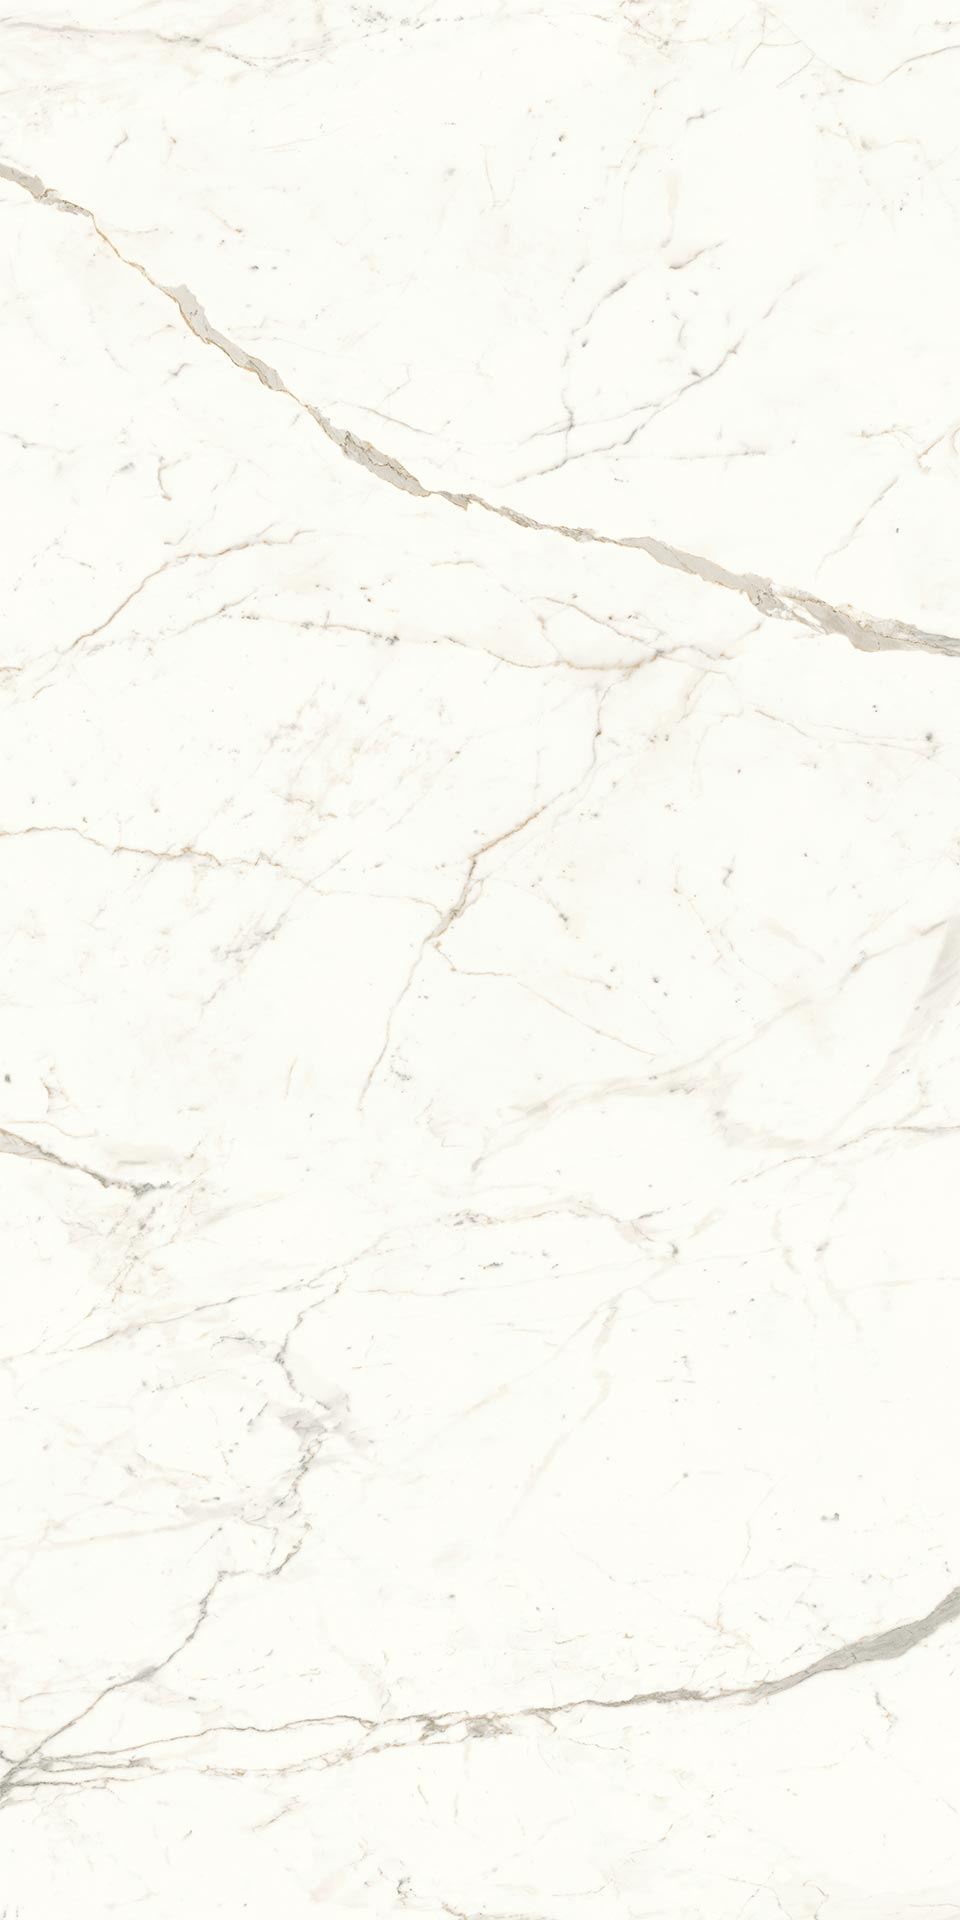 120x240-2-Calacatta-apuan-marble-effect-9mm-floor-porcelain-tile